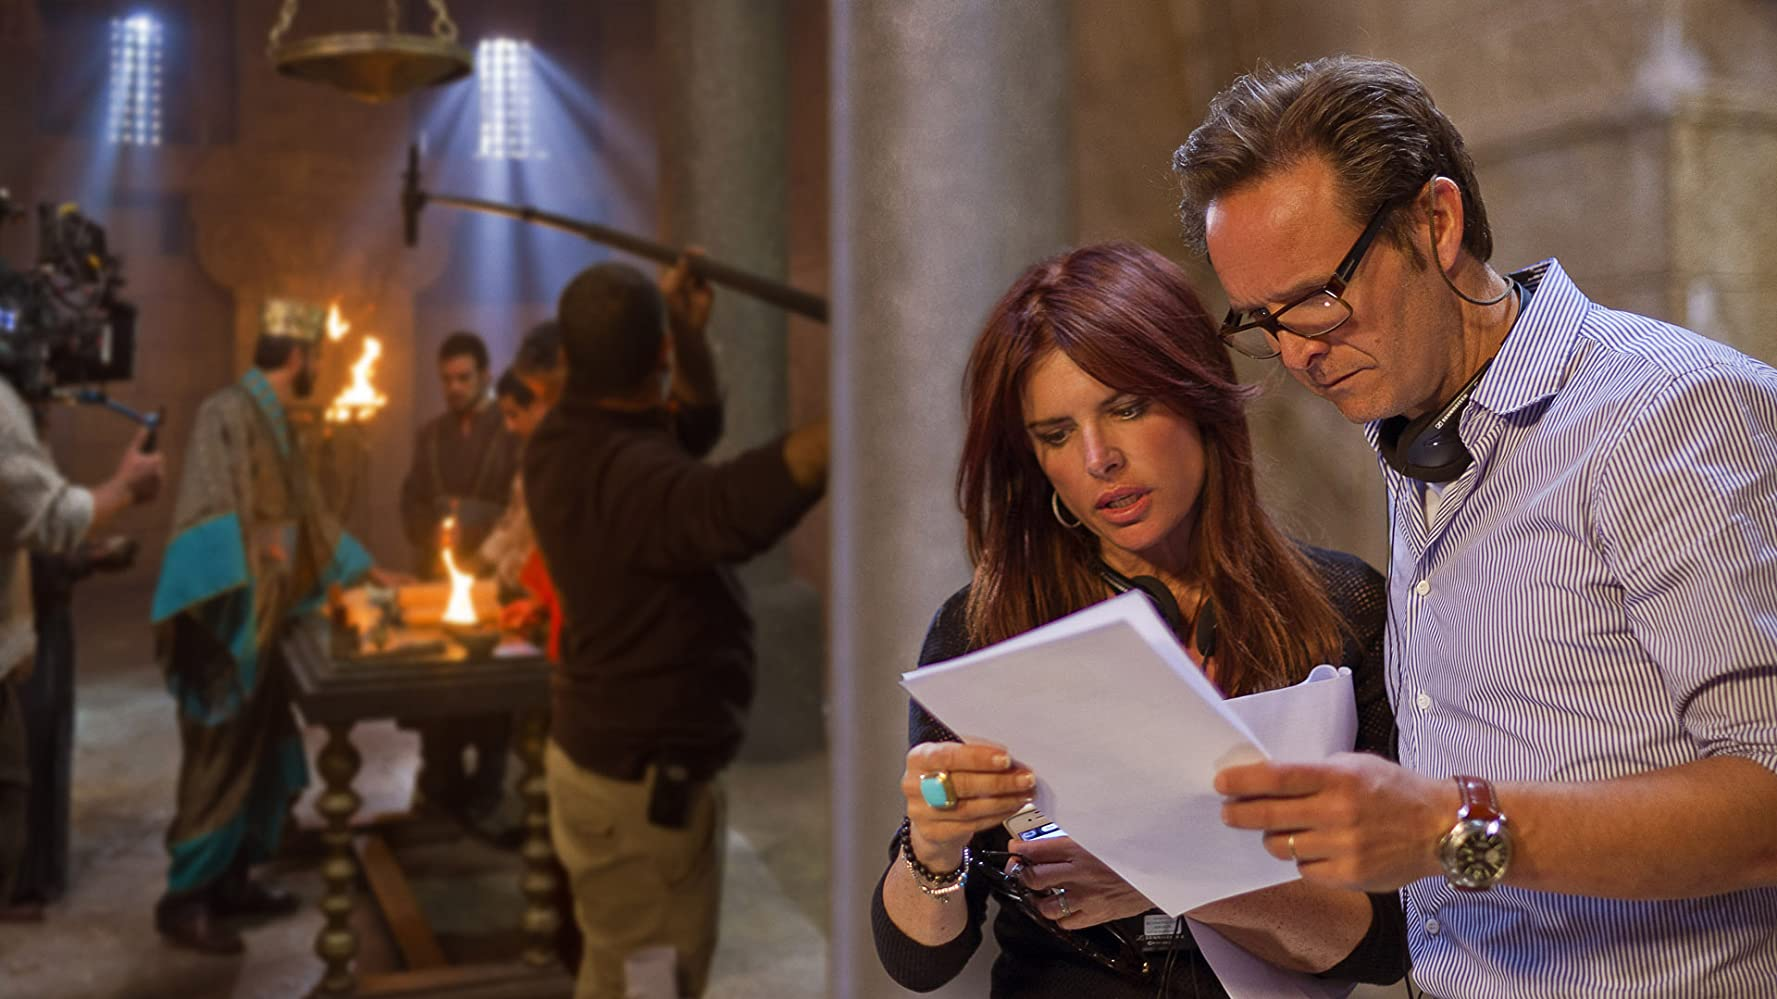 Roma Downey and Mark Burnett in The Bible (2013)